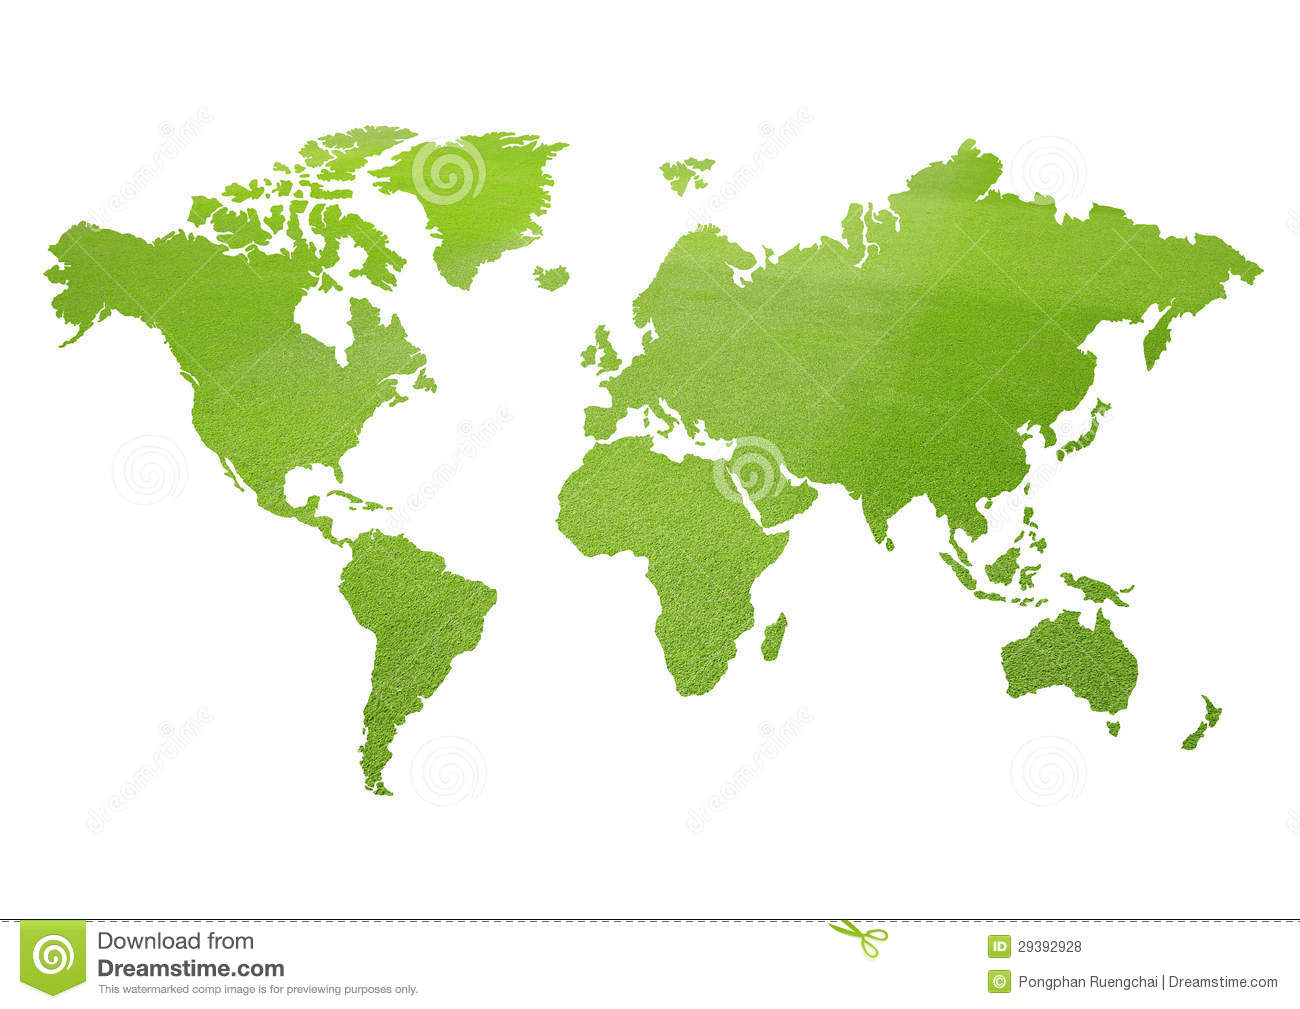 Green world map stock illustration illustration of graphic 29392928 green world map royalty free stock photo gumiabroncs Images